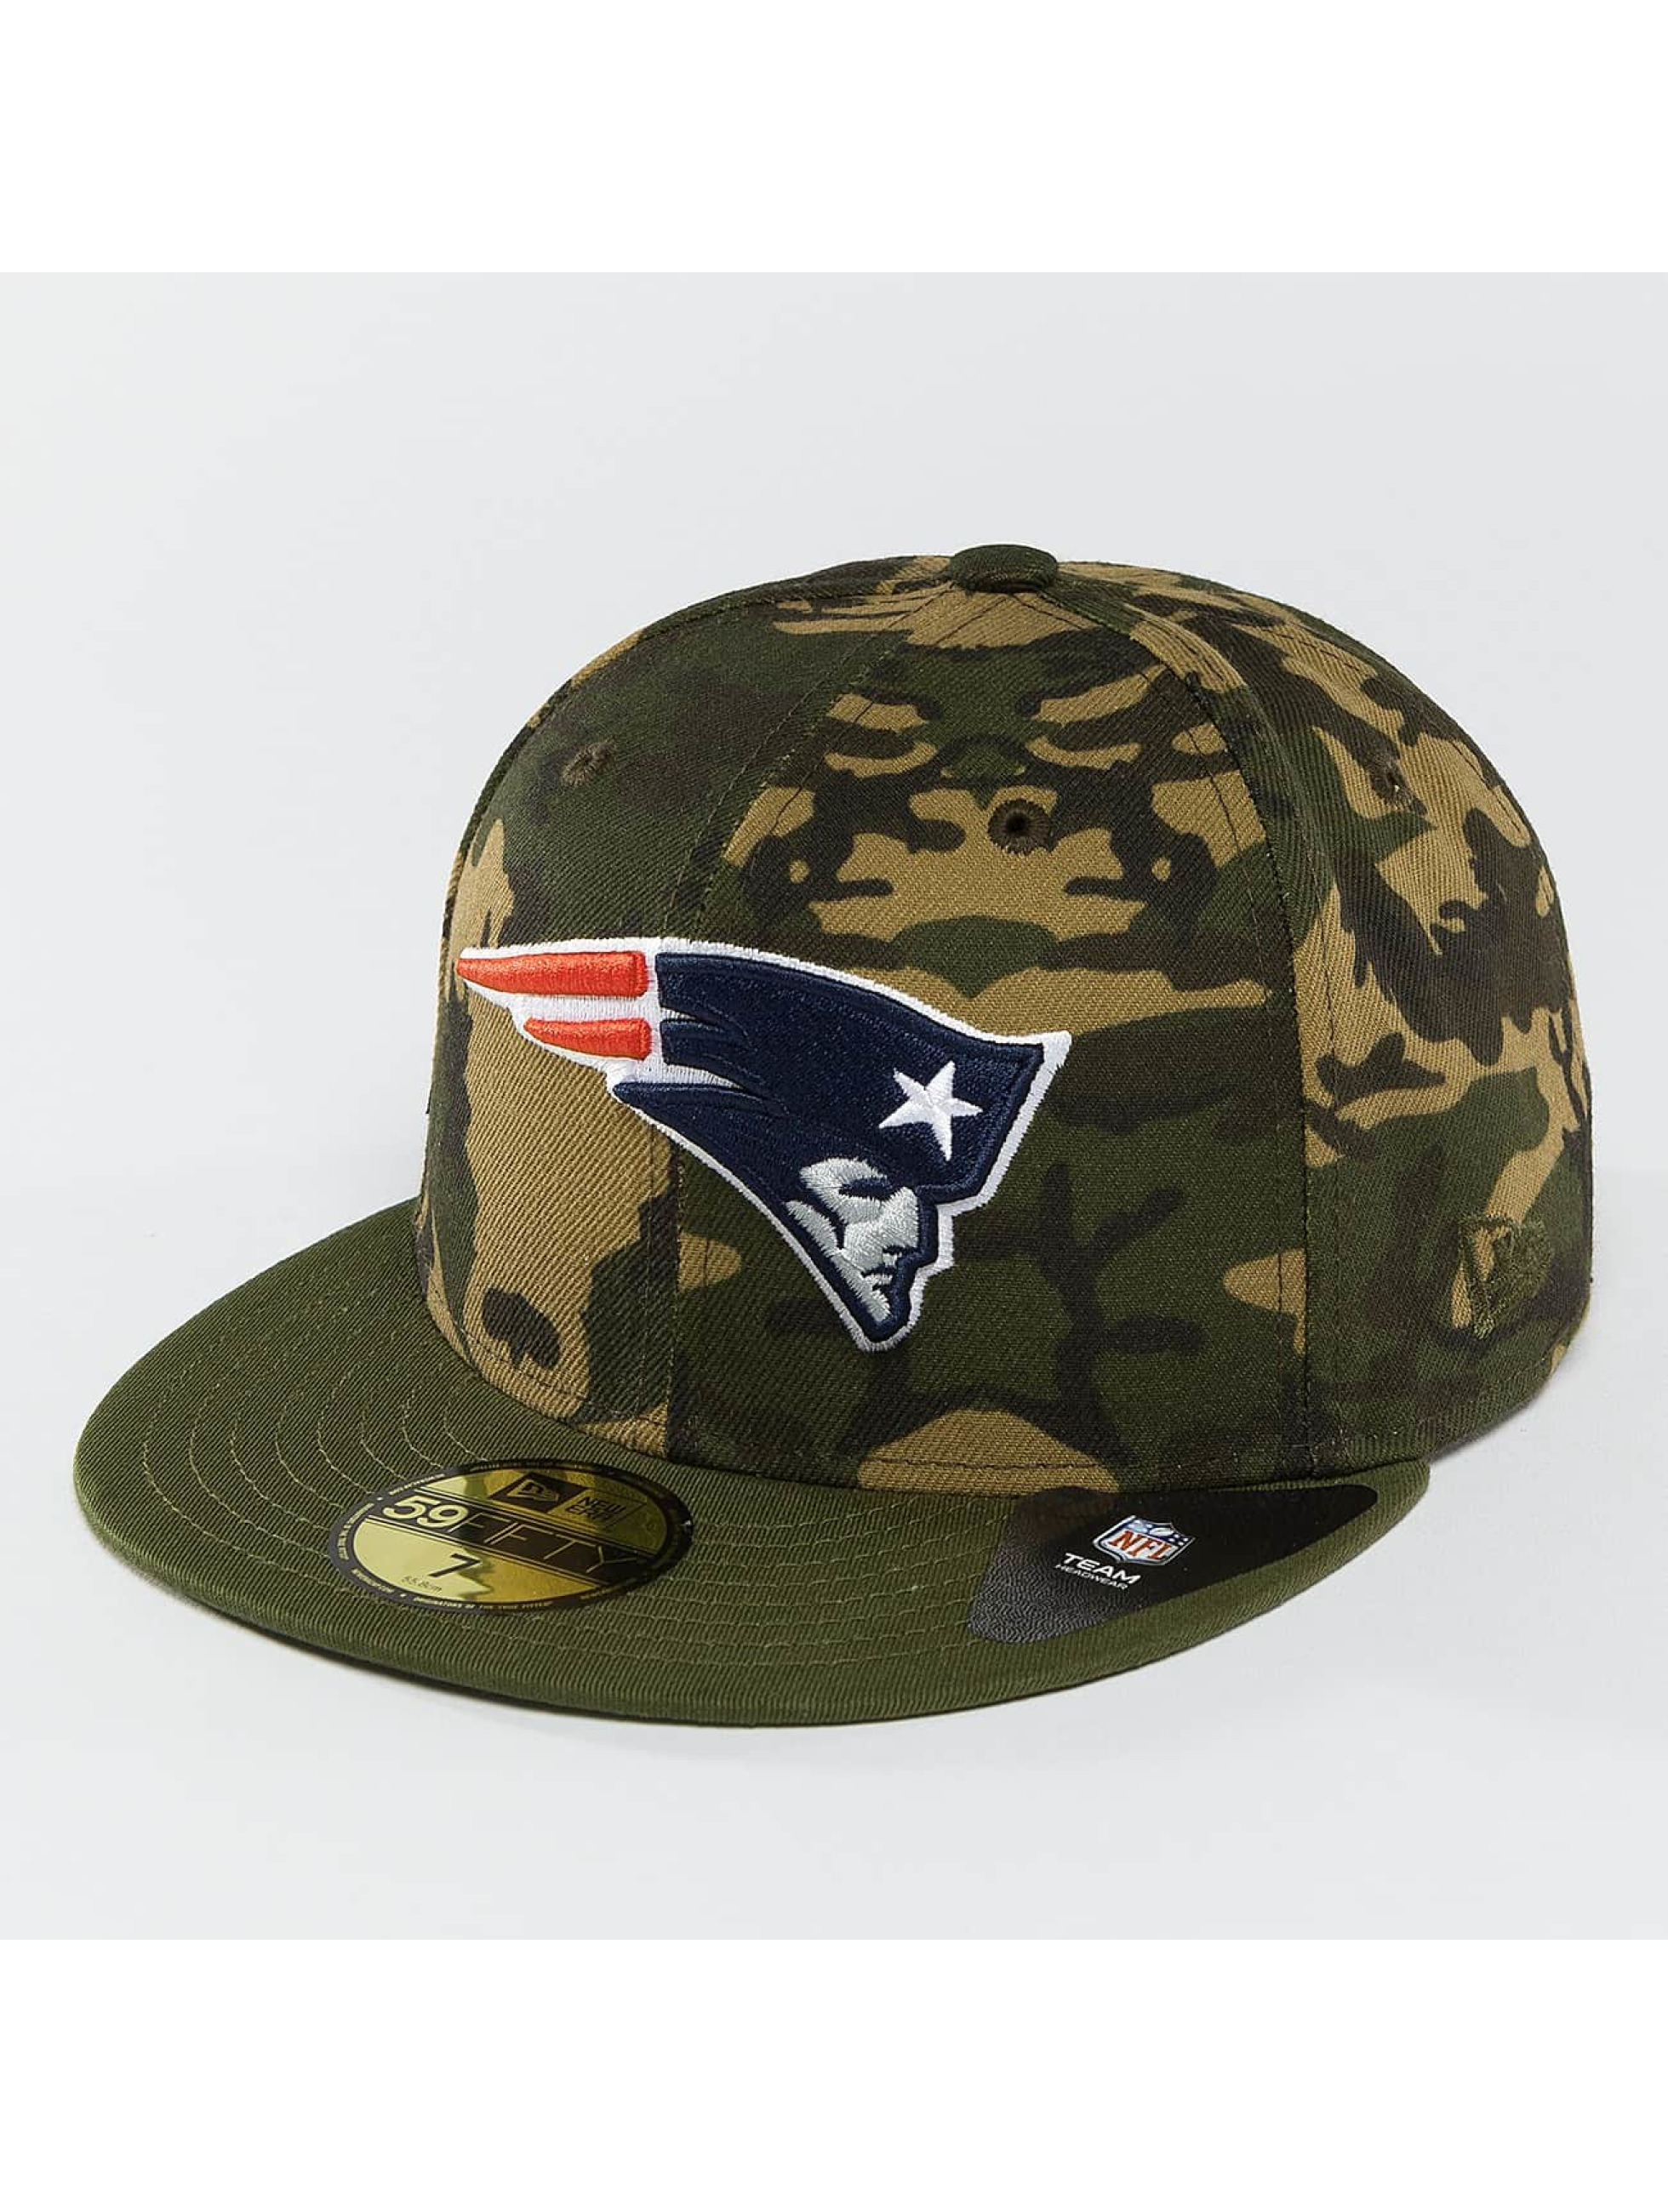 New Era Fitted Cap Camo Team New England Patriots 59Fifty camouflage